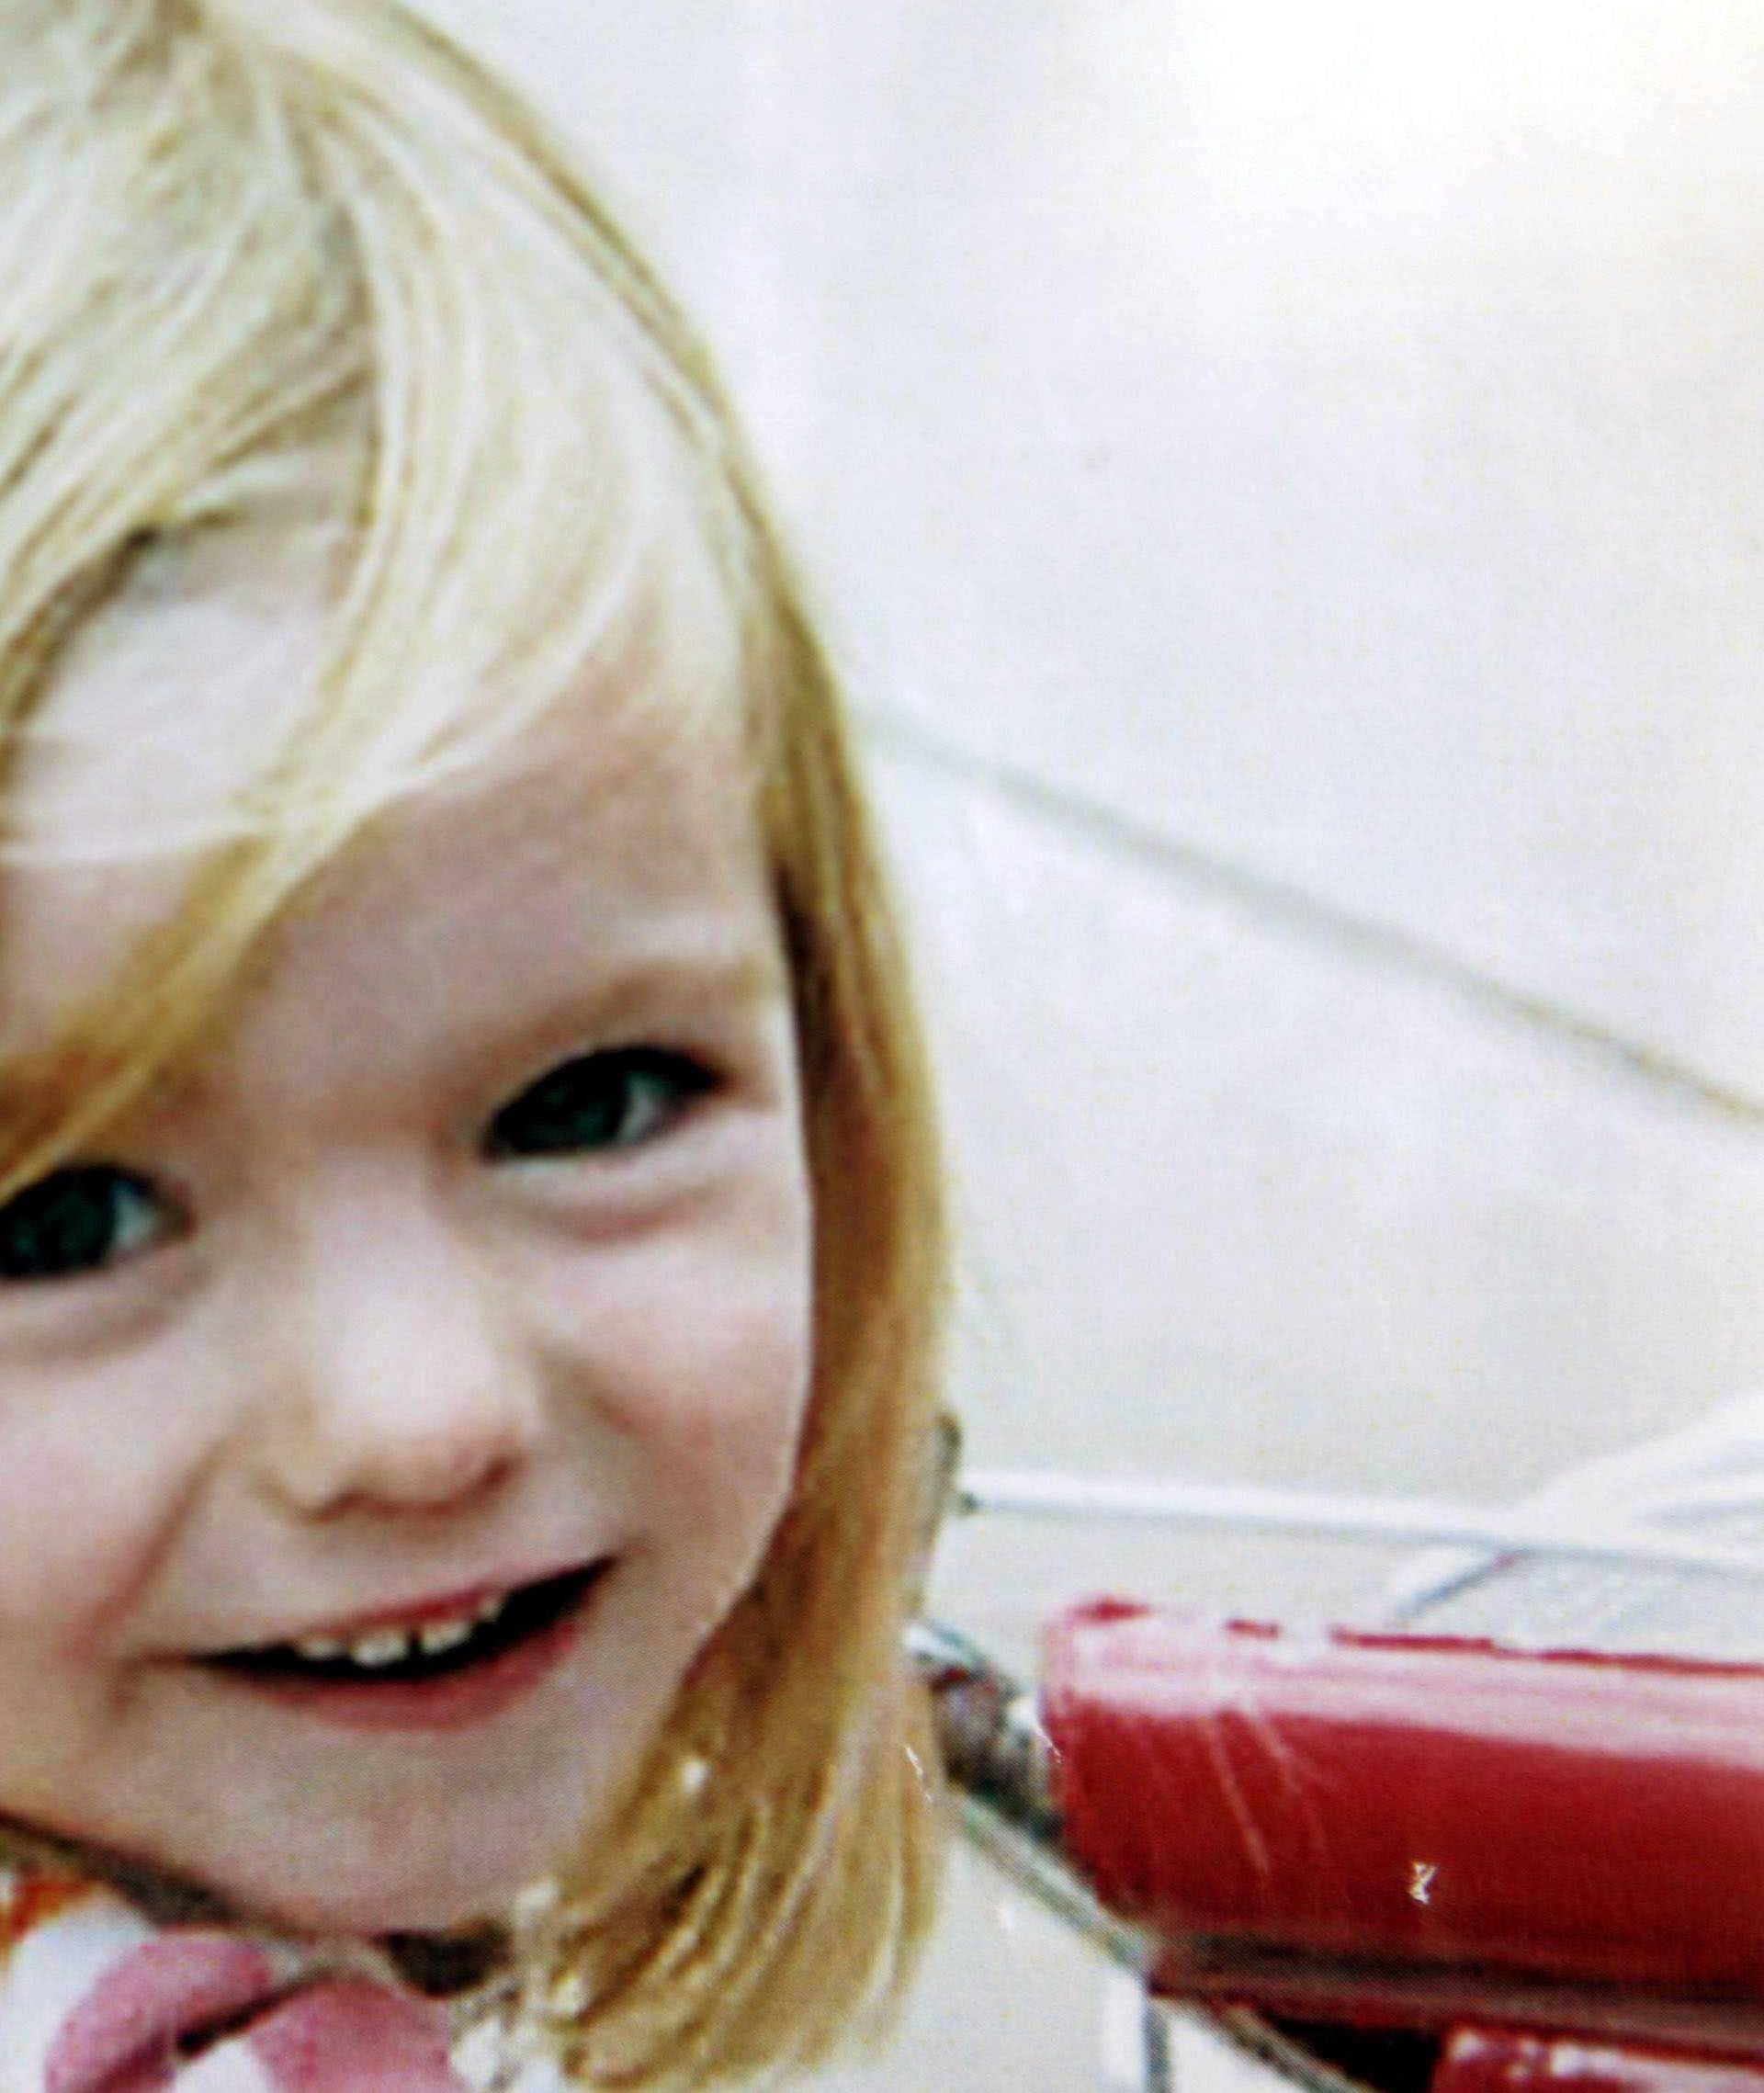 PORTUGAL: Disappearance of Maddie McCann